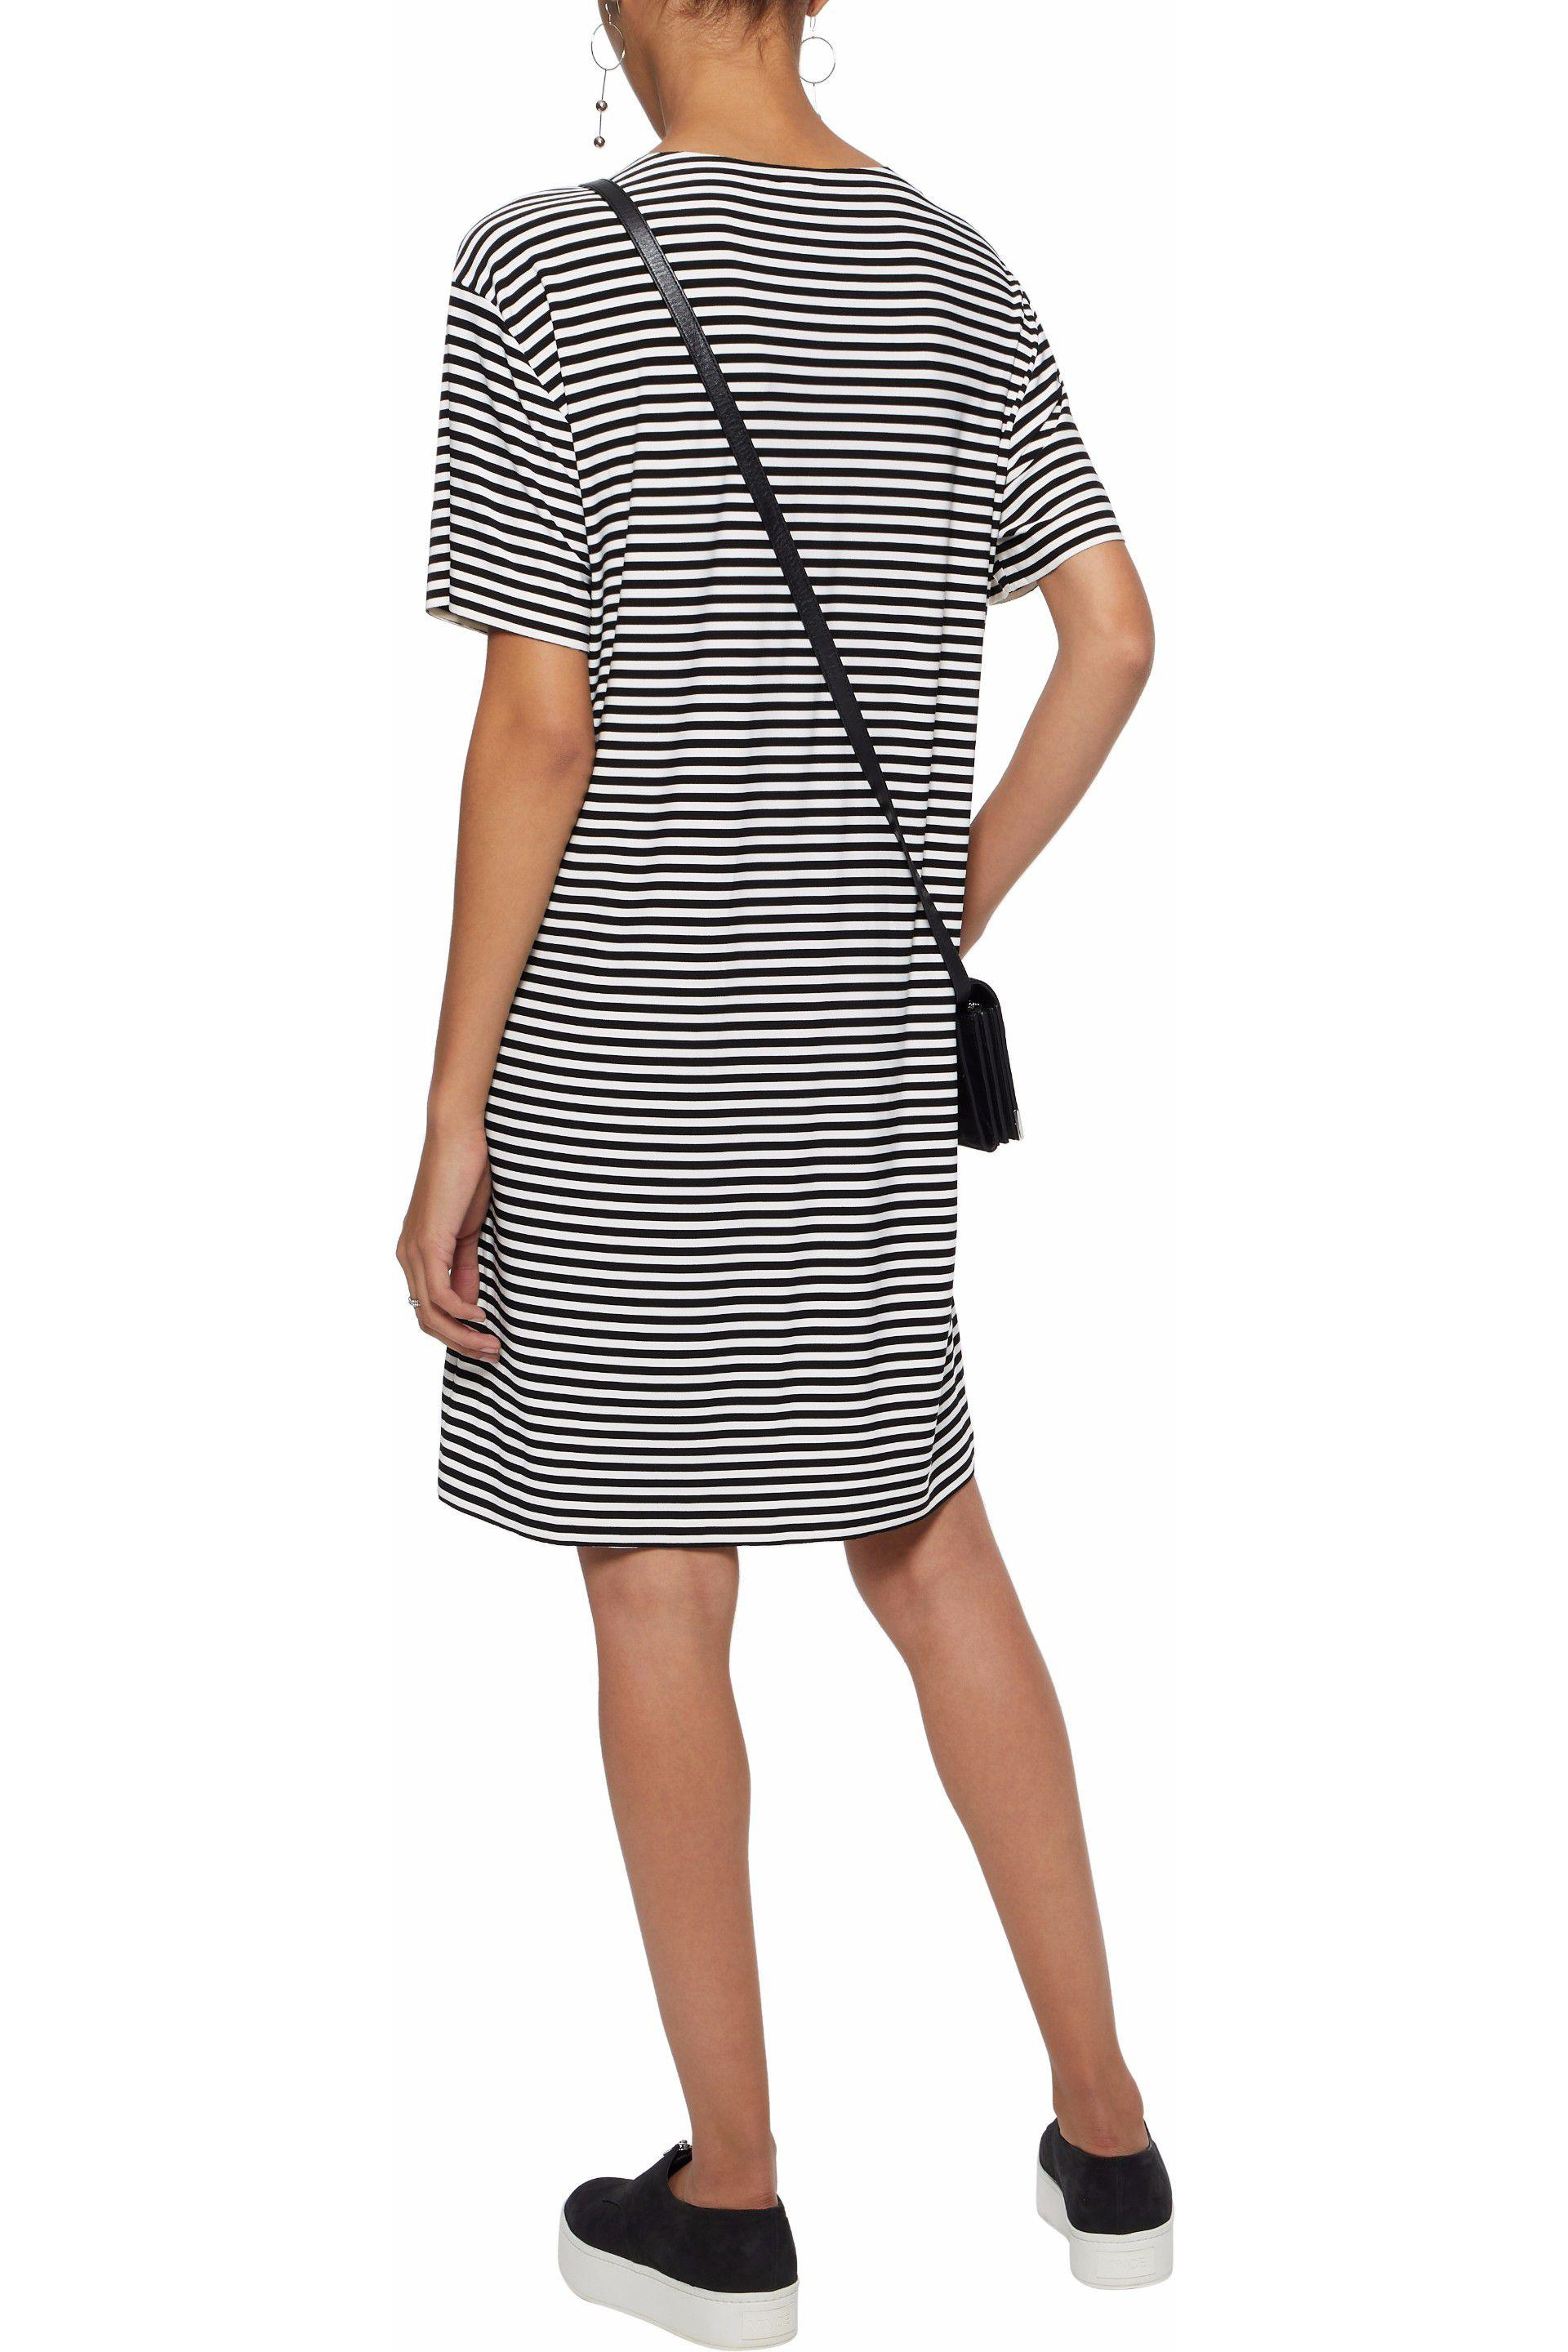 c2a083b2e02 Lyst - Norma Kamali Striped Stretch-jersey Dress in White